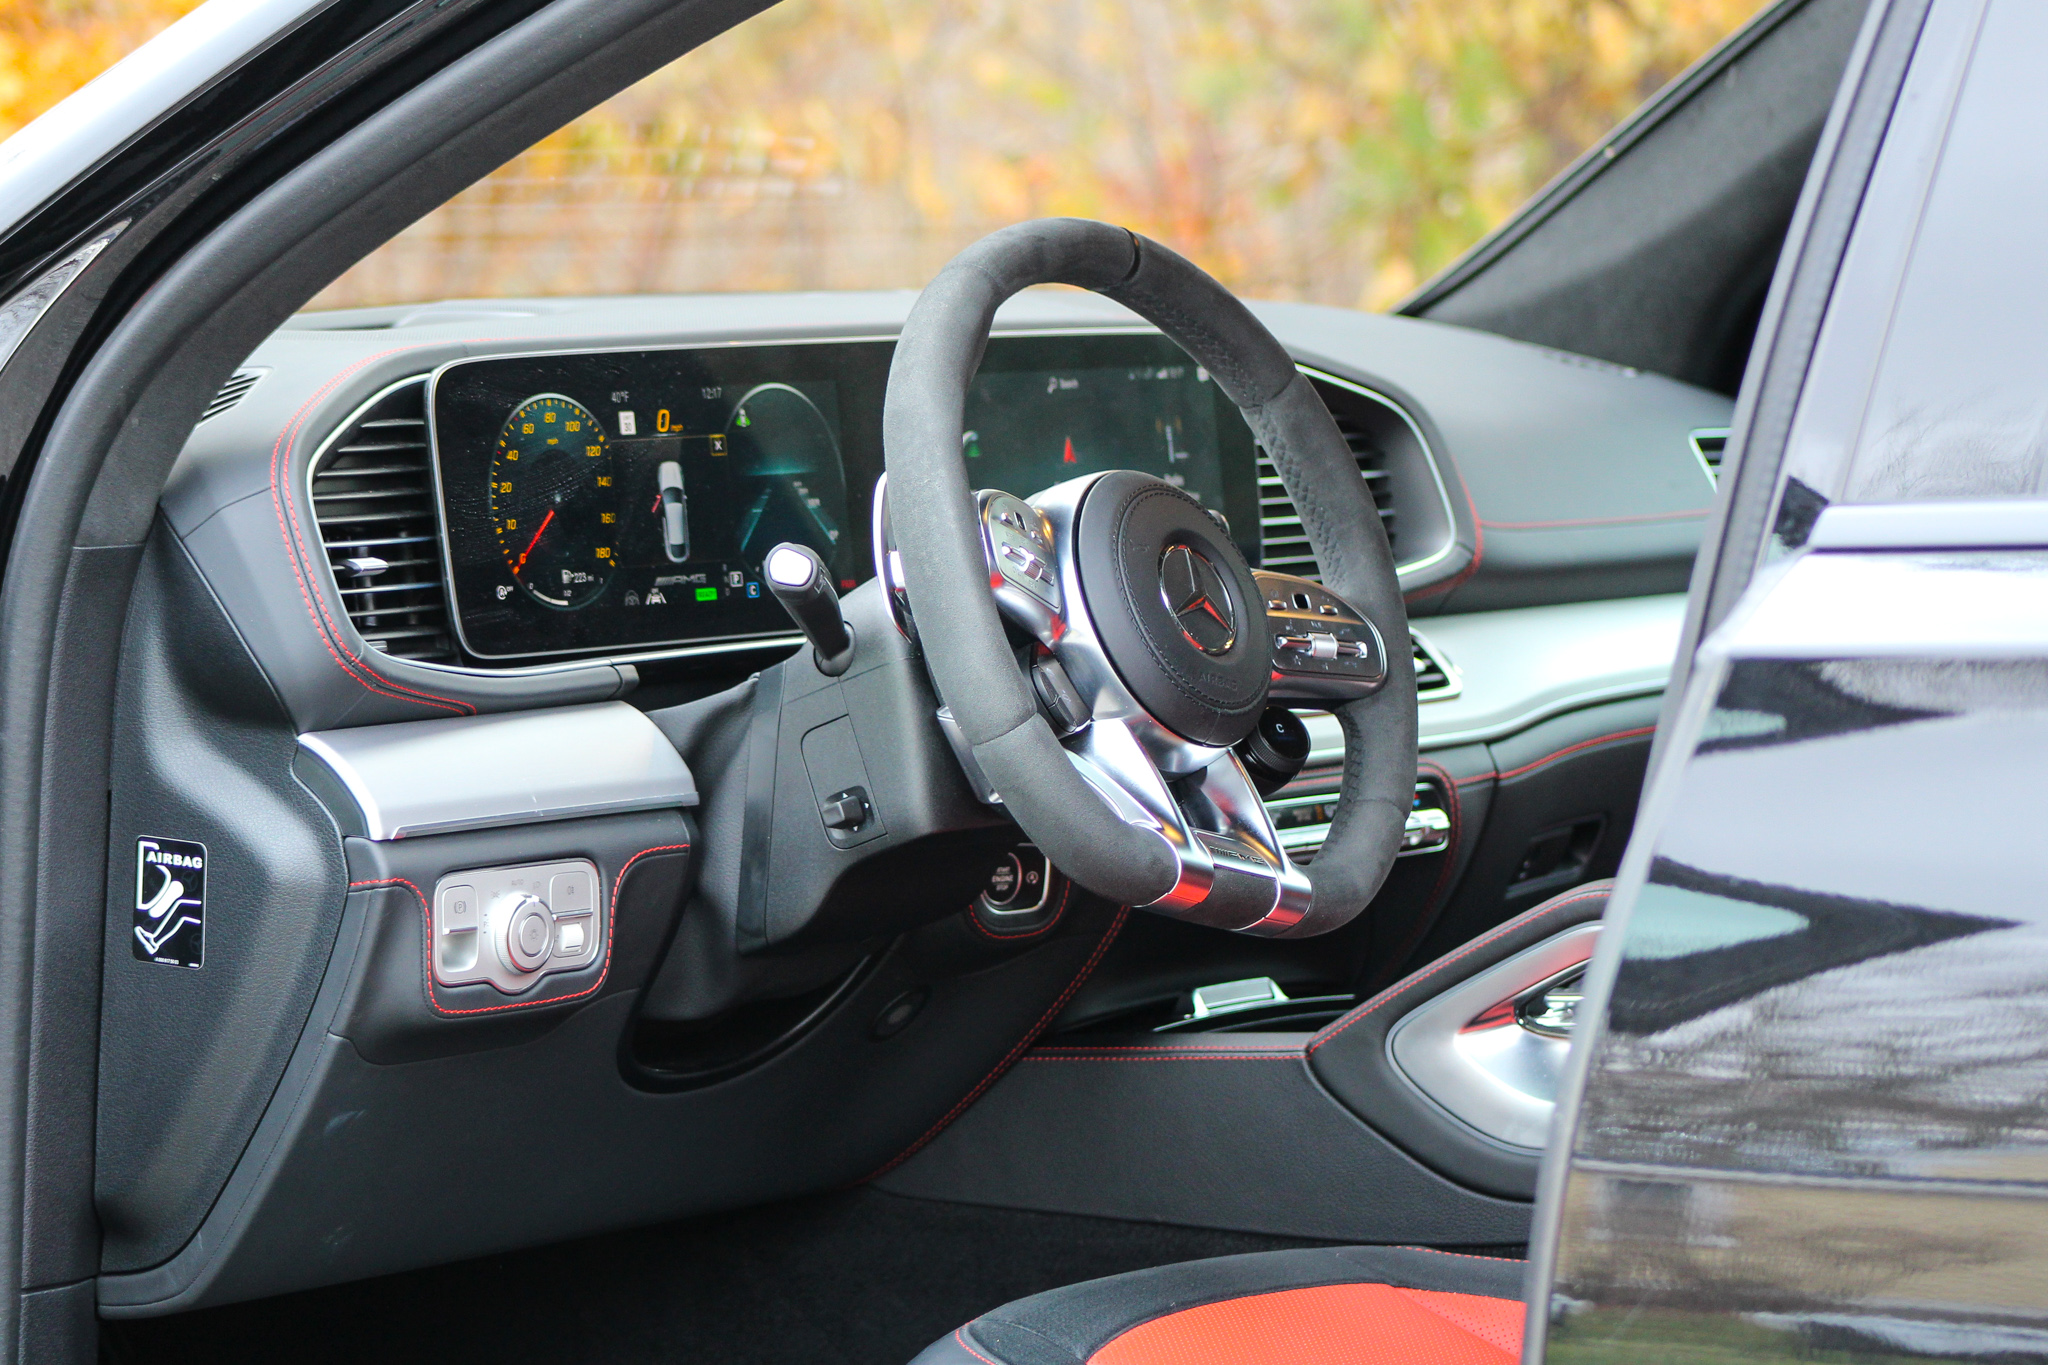 2021 Mercedes-AMG GLE 53 Coupe interior